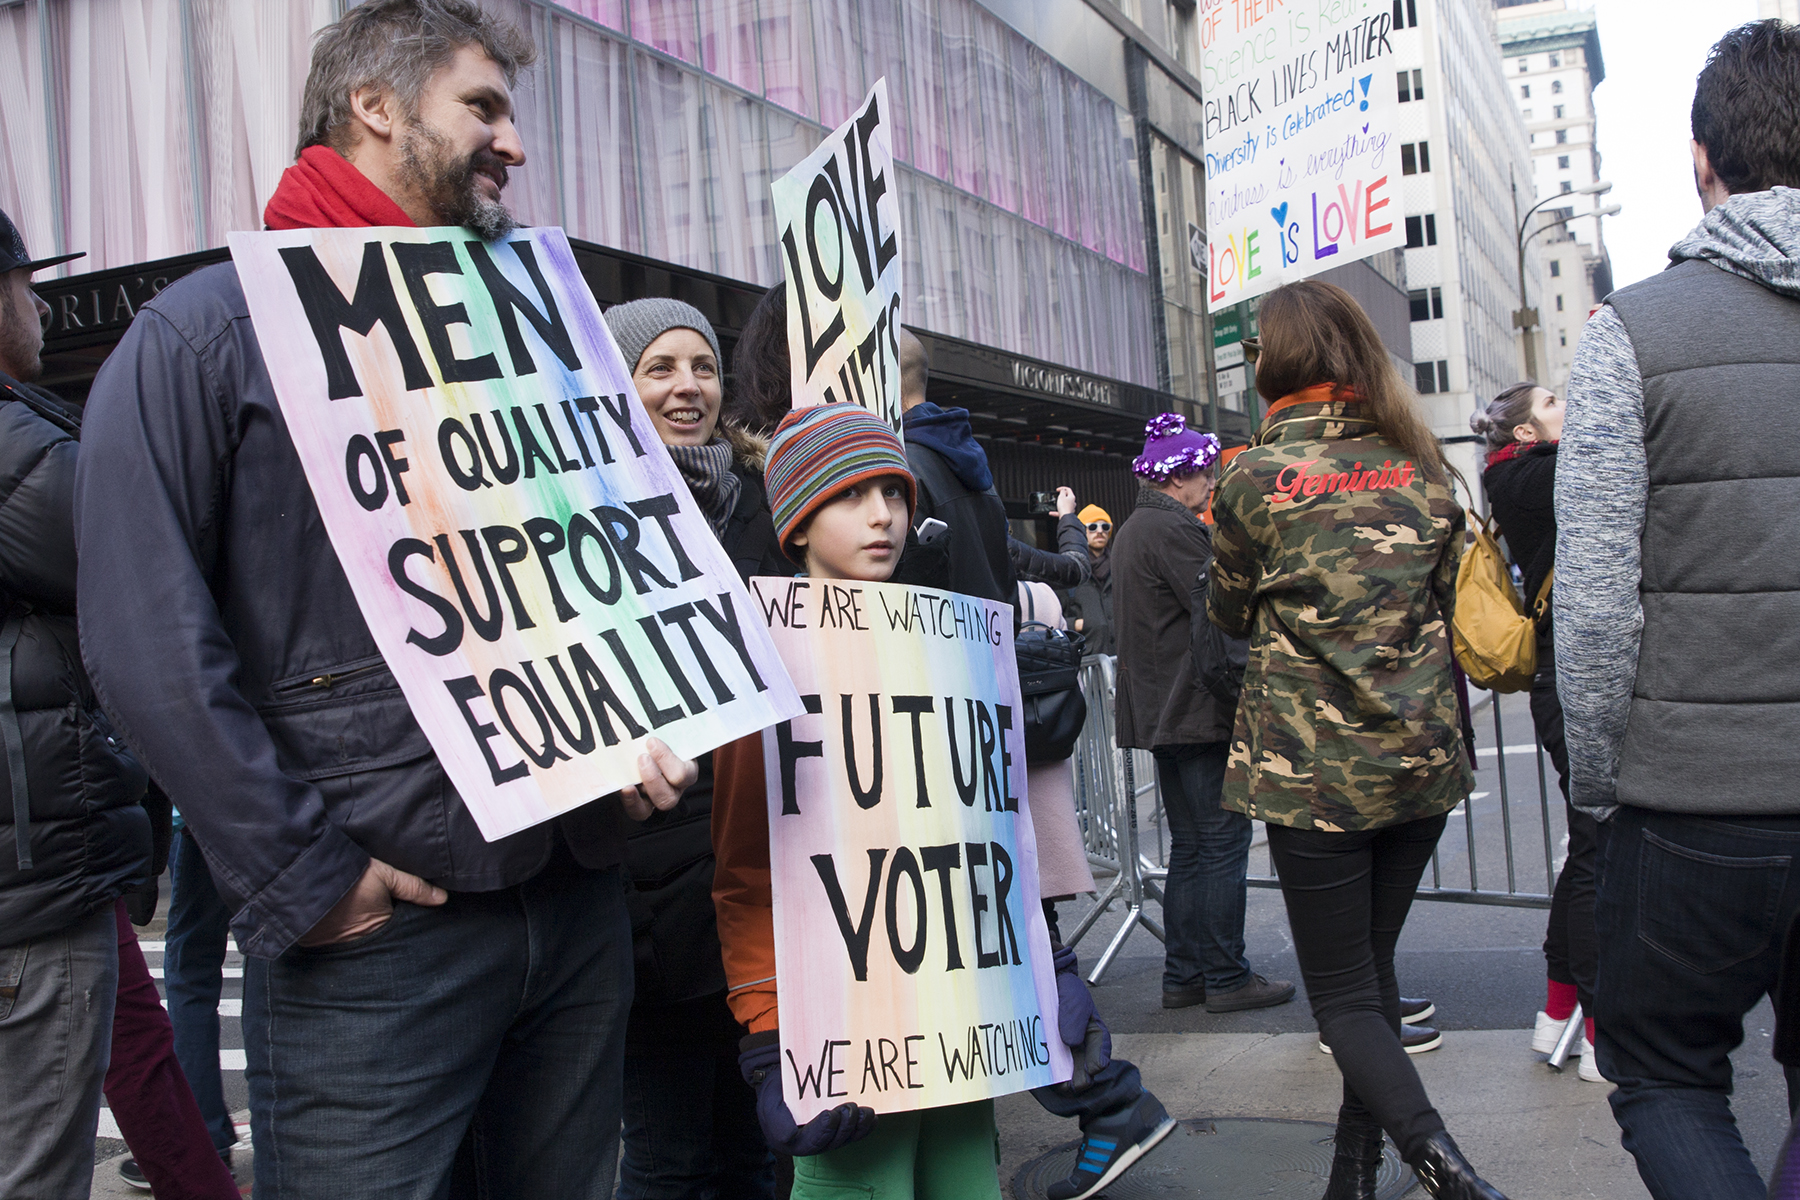 """""""Men of Equality Support Equality""""  """"Future Voter: We Are Watching""""  The Women's March, New York City, January 21, 2017"""